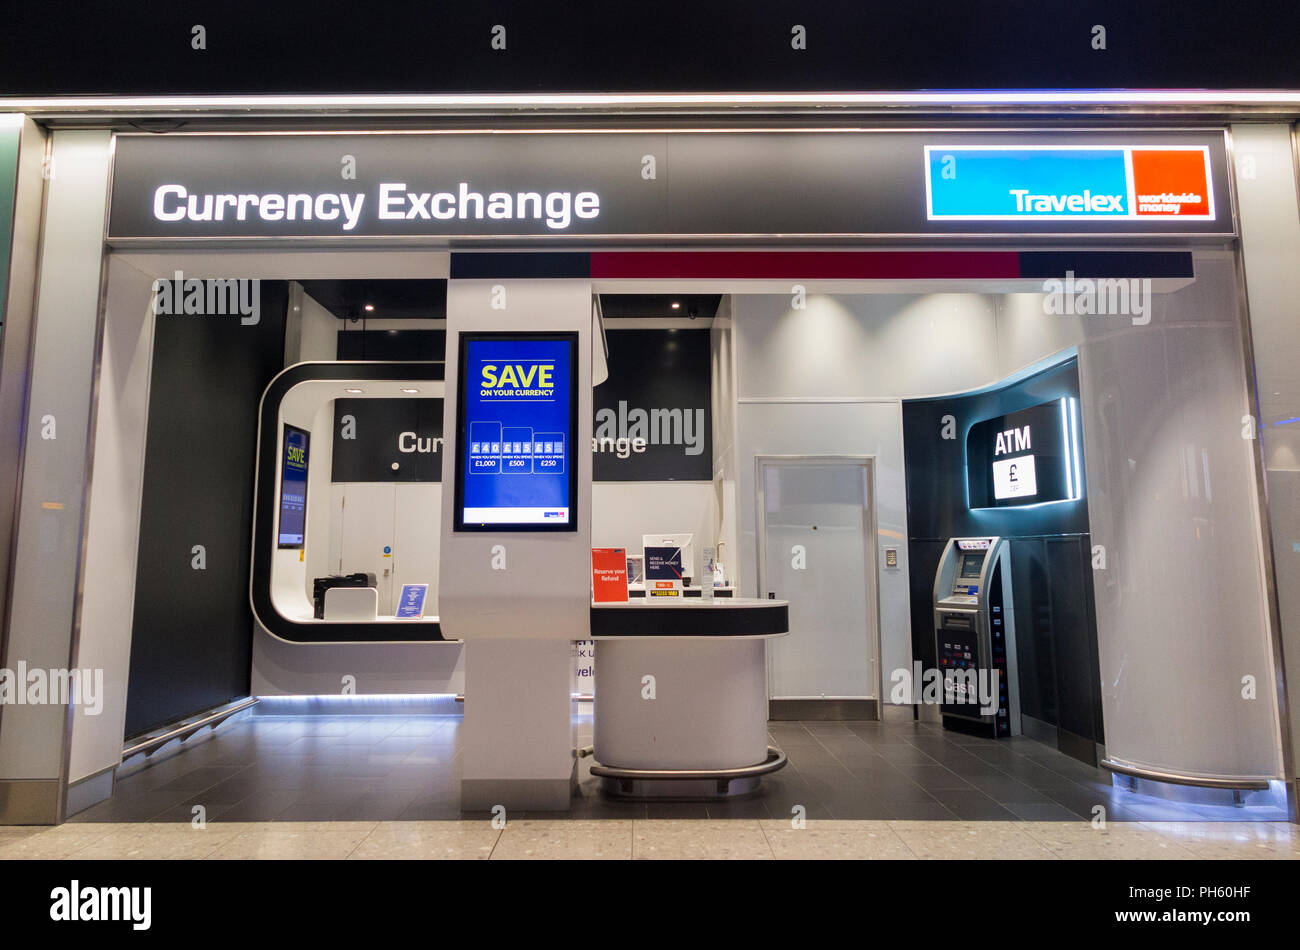 Airport atm photos airport atm images alamy - Bureau de change aeroport ...